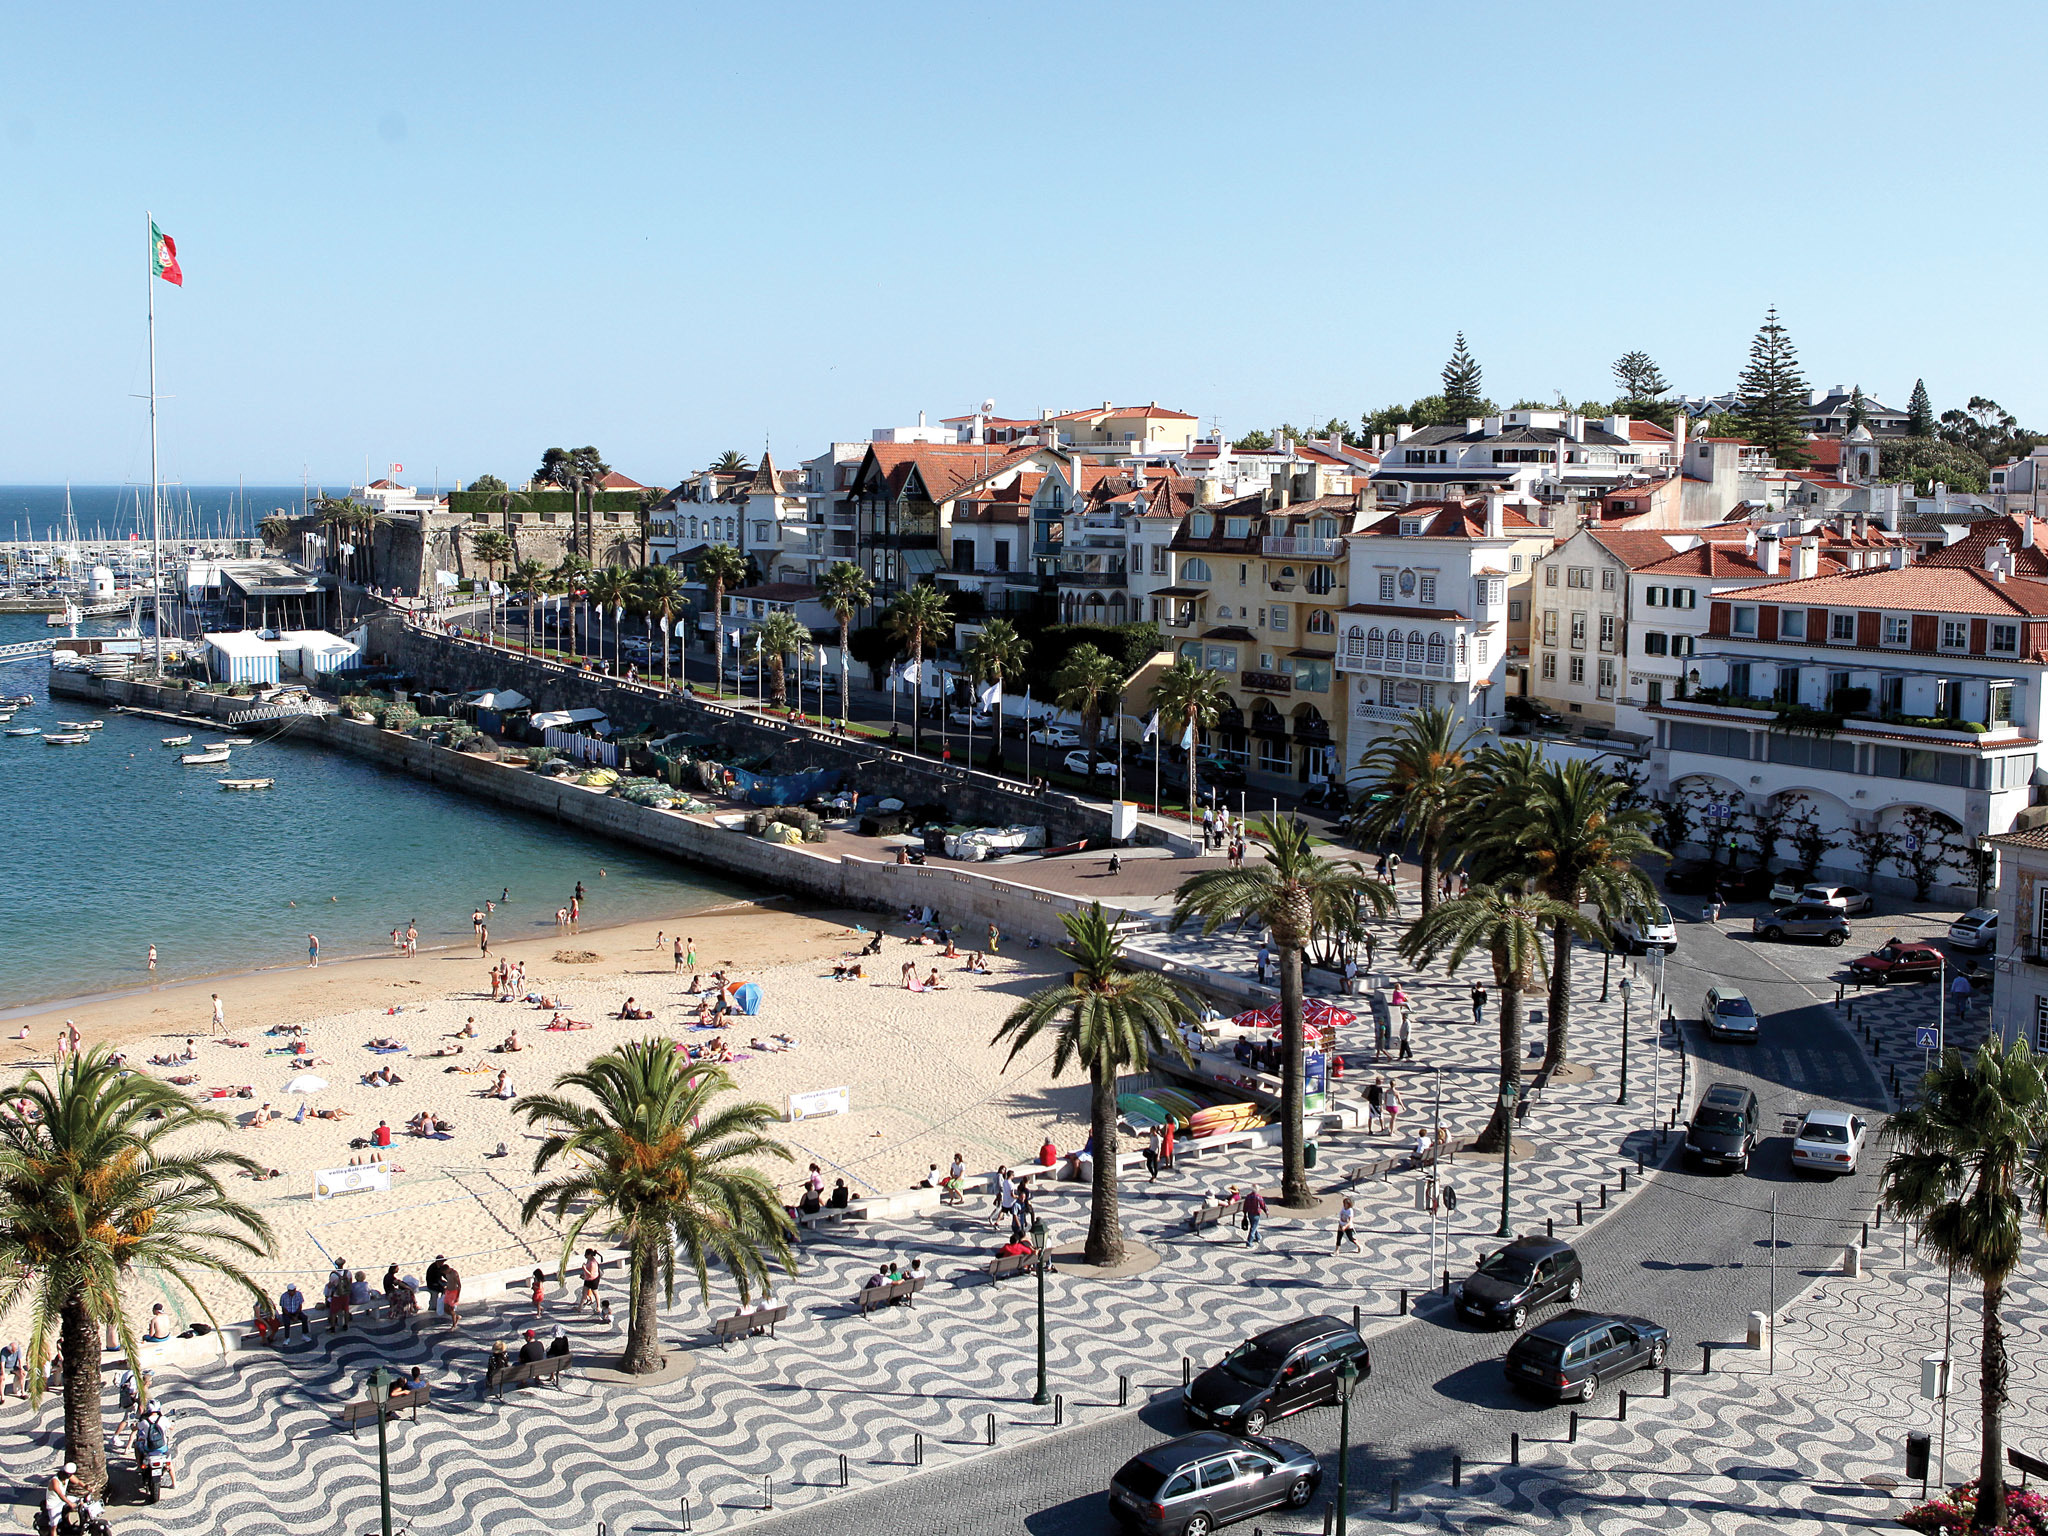 30 reasons to fall in love with Cascais